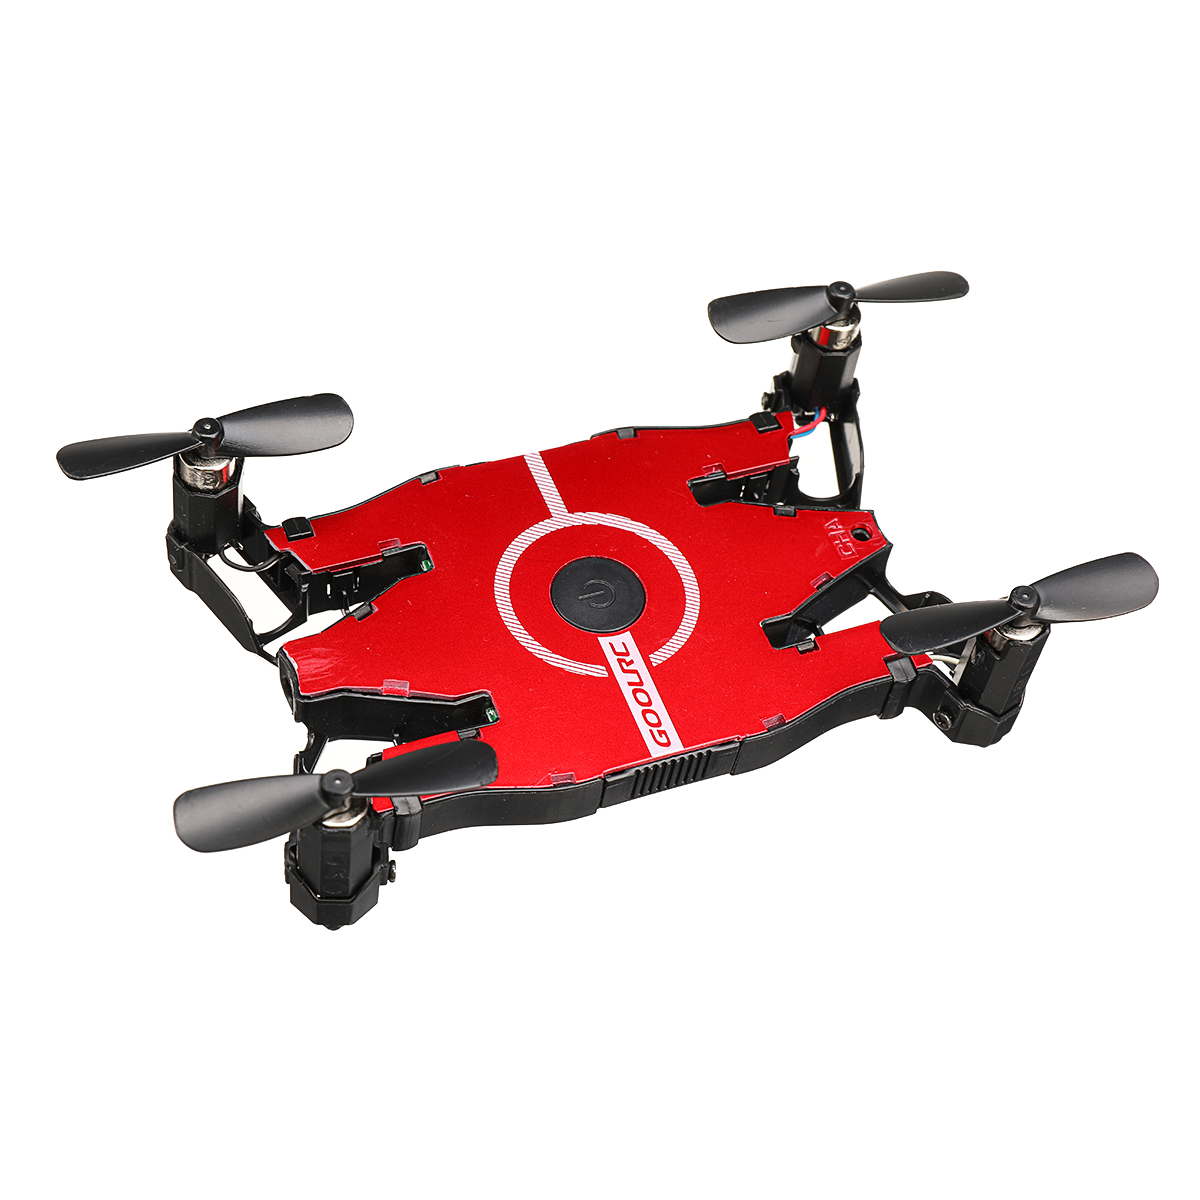 JJRC T49 Wifi FPV Mini Selfie Drone HD Camera Auto Foldable Arm RC Quadcopter Helicopter Christmas Gift Kid VS H37 E57 (red)